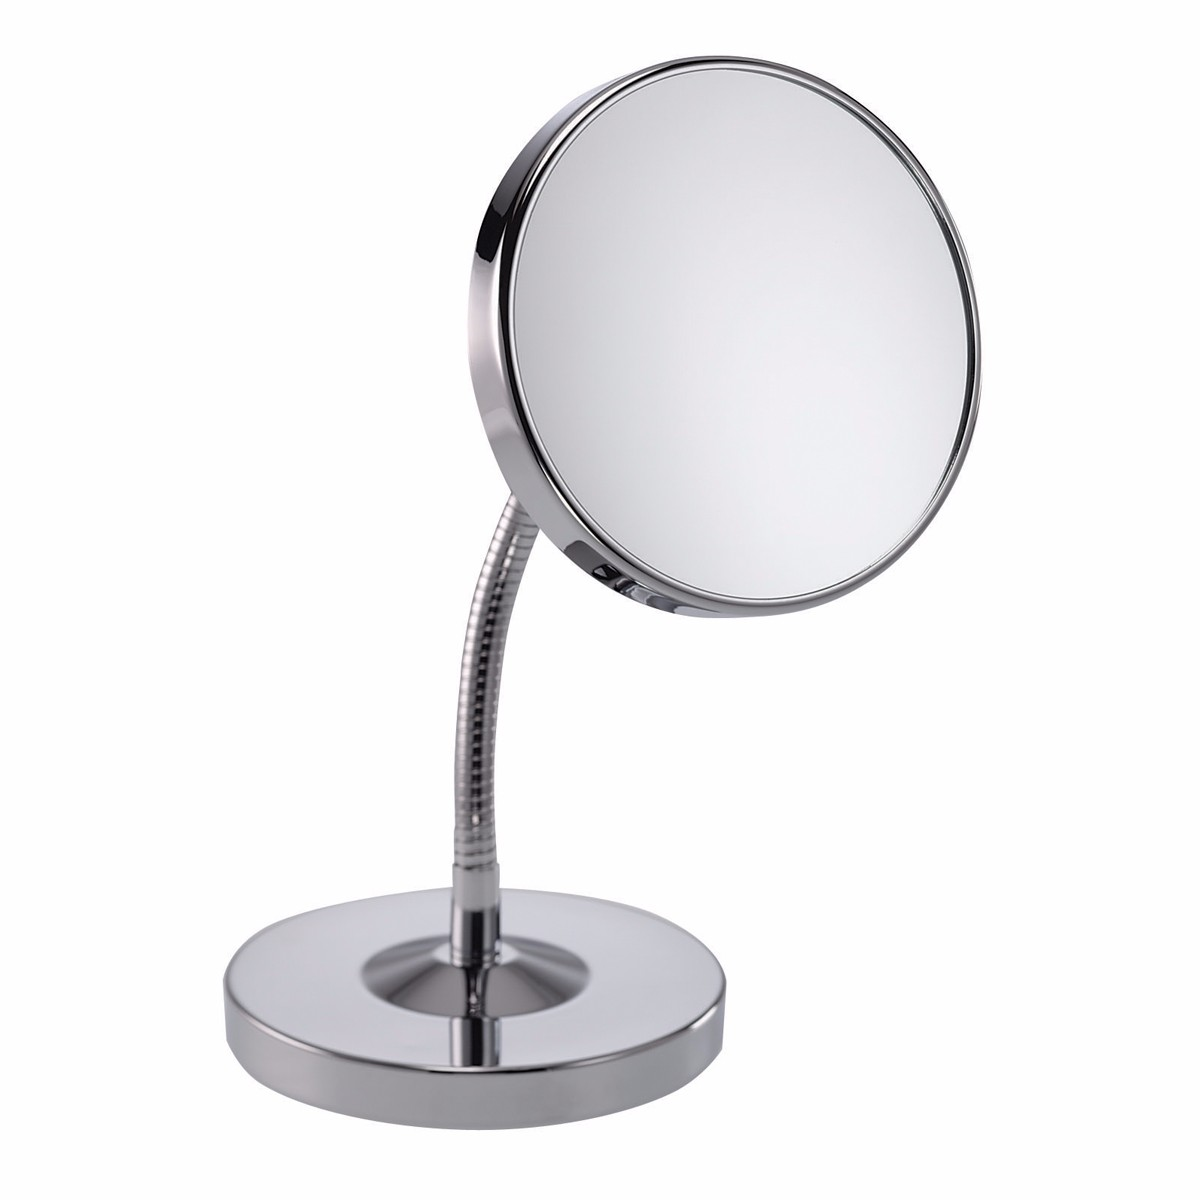 Leo Unisex Flexible 7x Magnification Mirror 722 13ch